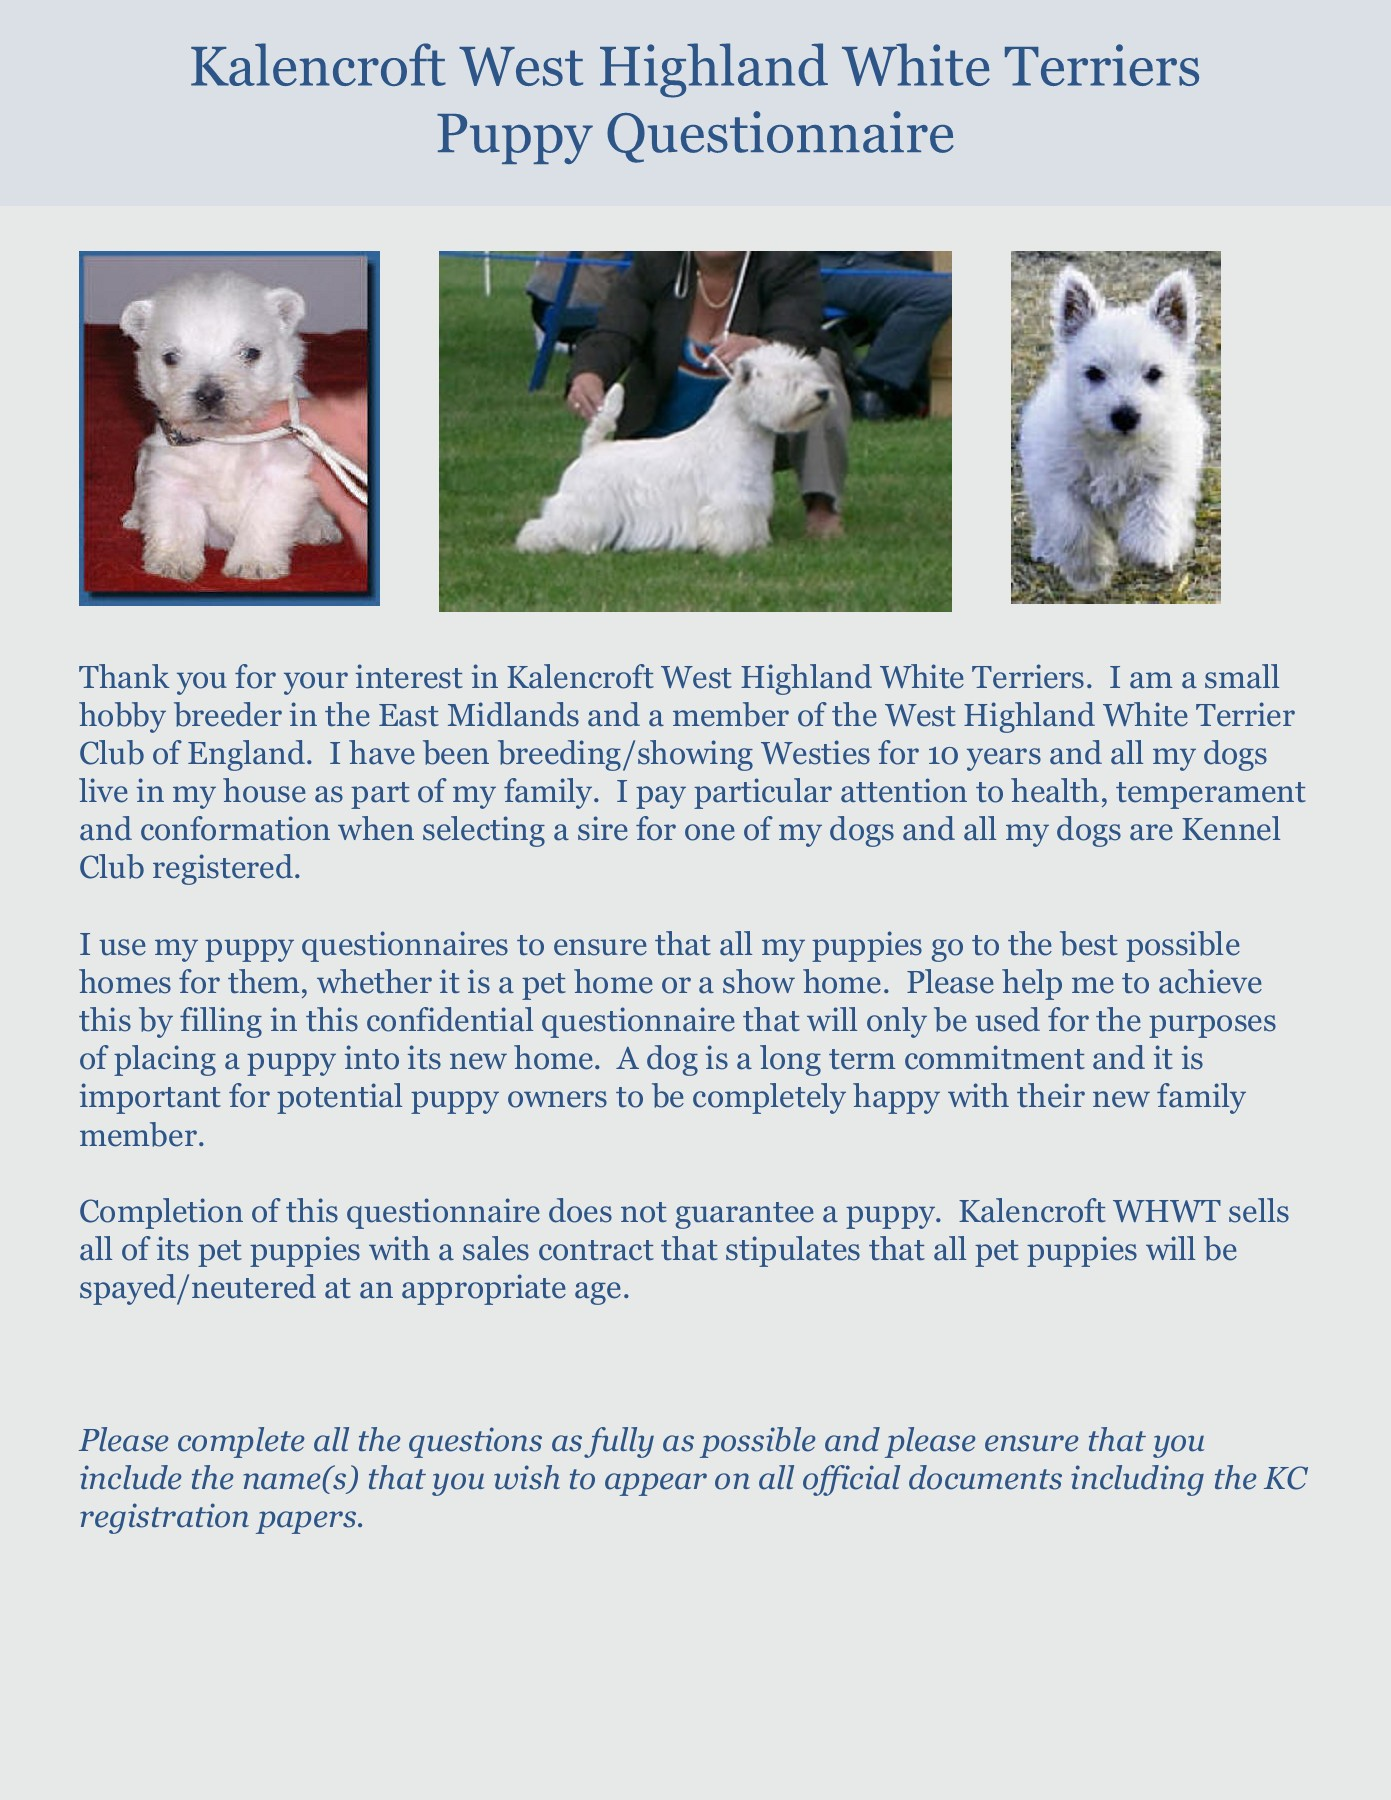 Kalencroft West Highland White Terriers Puppy Questionnaire